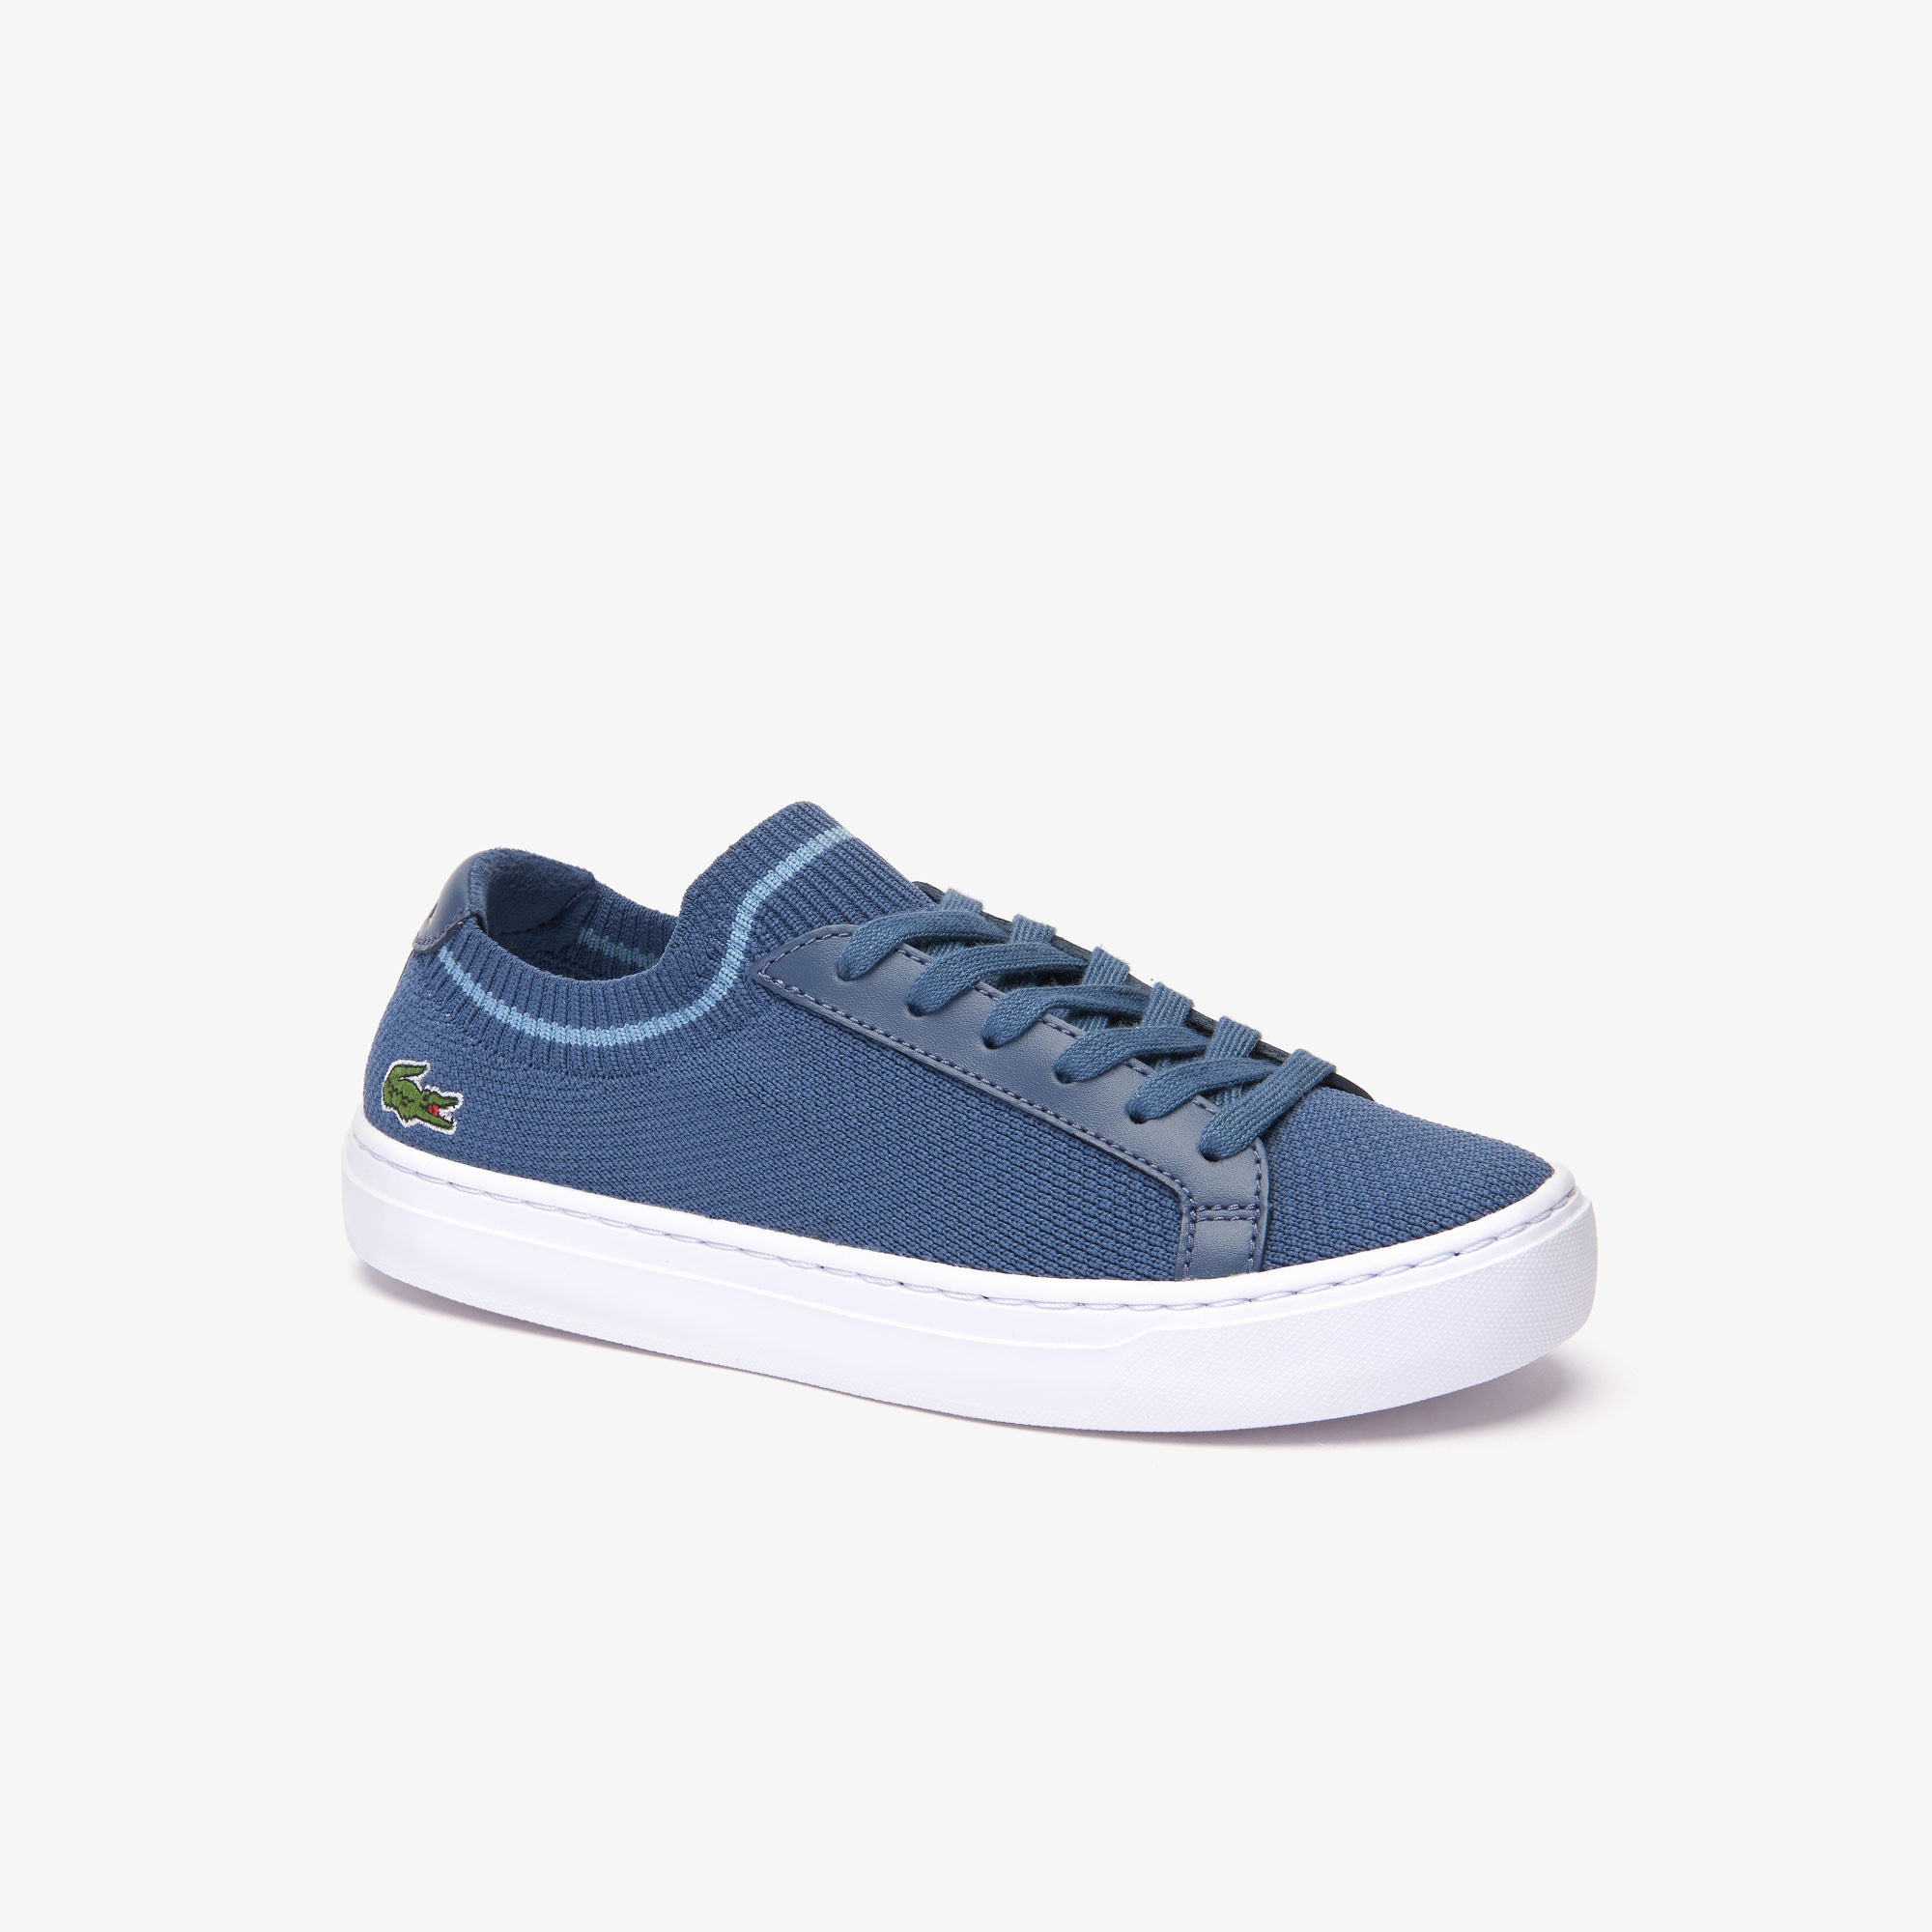 Women's La Piquée Knit Sneakers